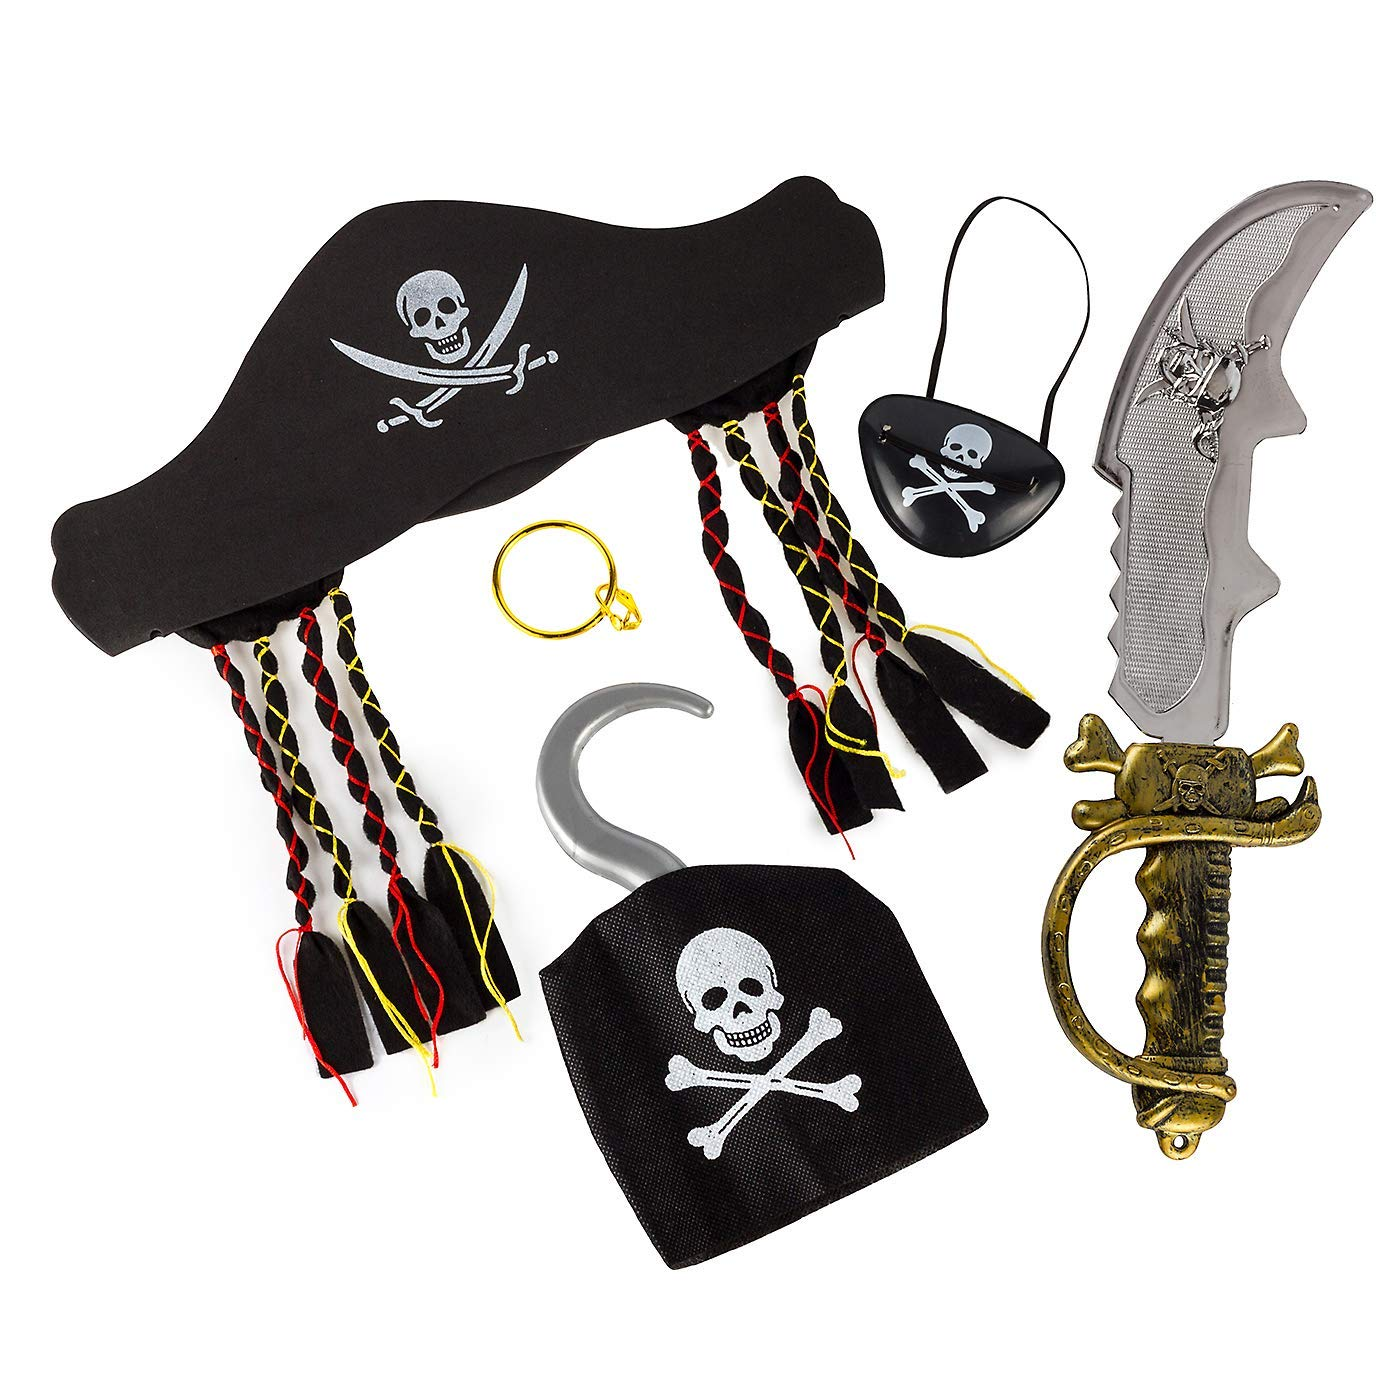 Halloween Pirate Costume Accessory Set (5pcs) Include Pirate Hat Sword Ear Ring Hook and Eye Patch